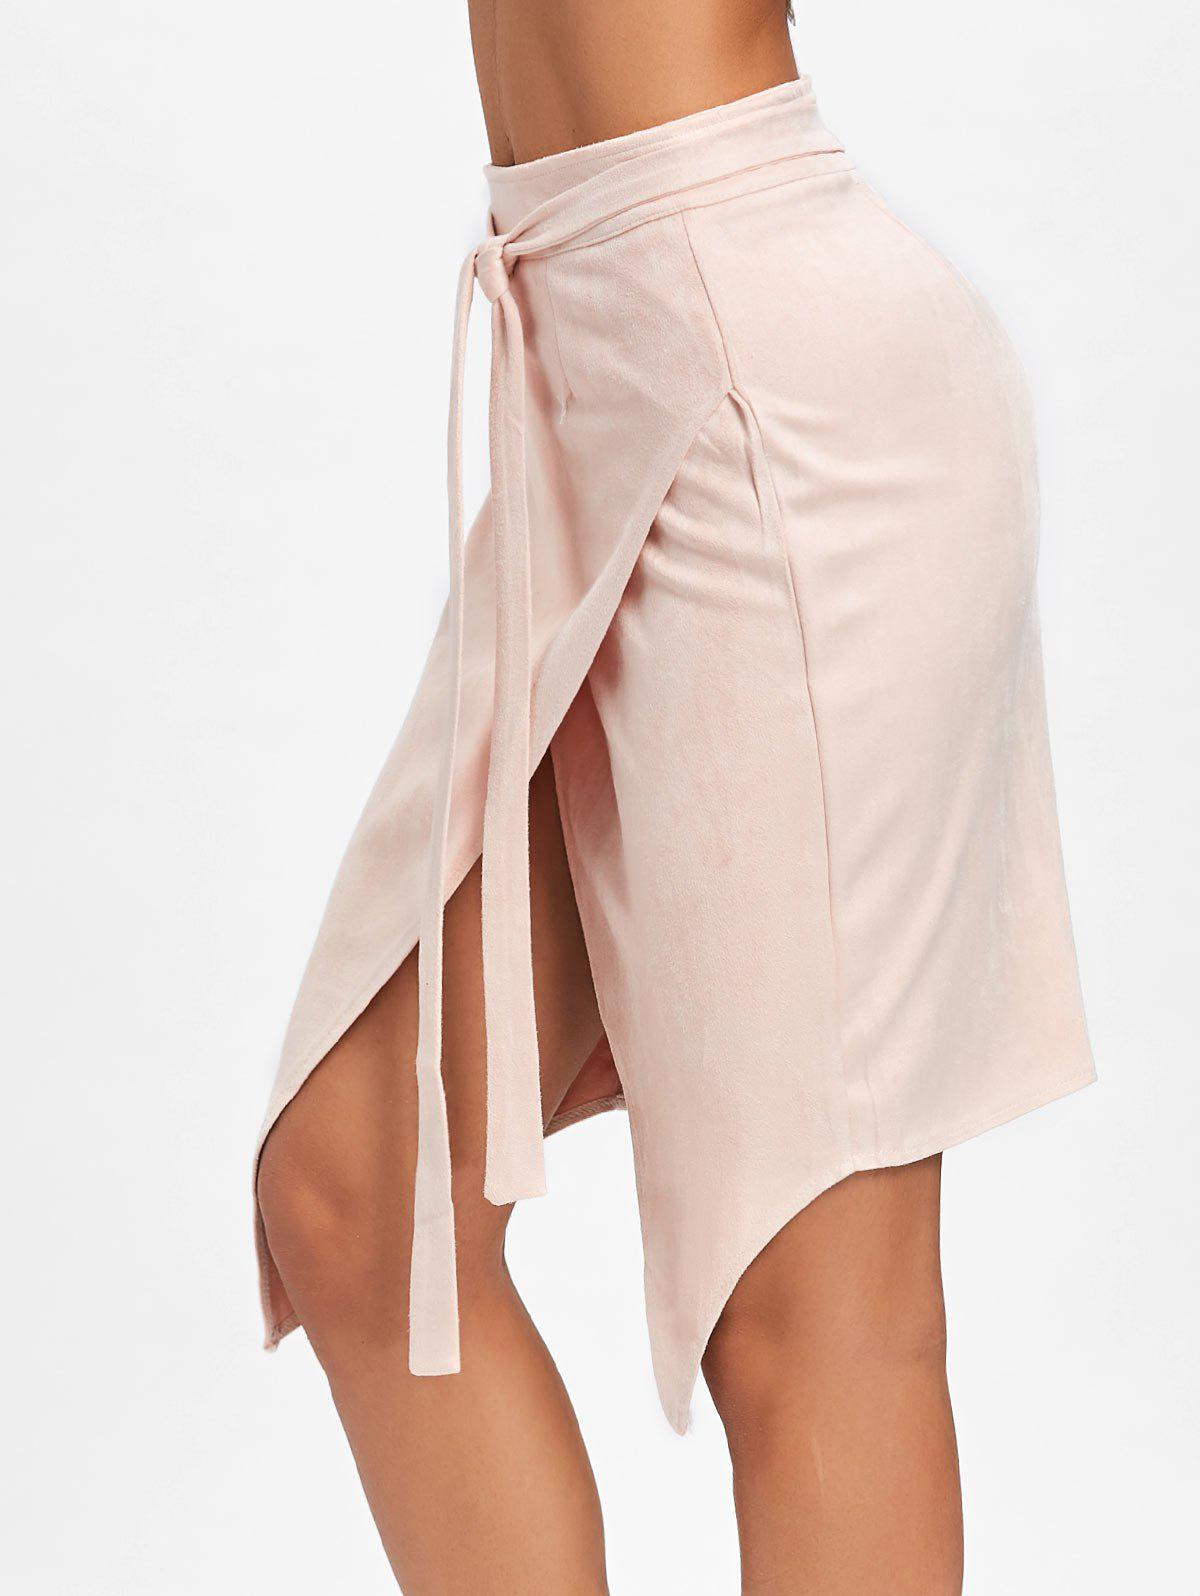 High Waisted Asymmetrical Wrap Skirt - CAMEO M